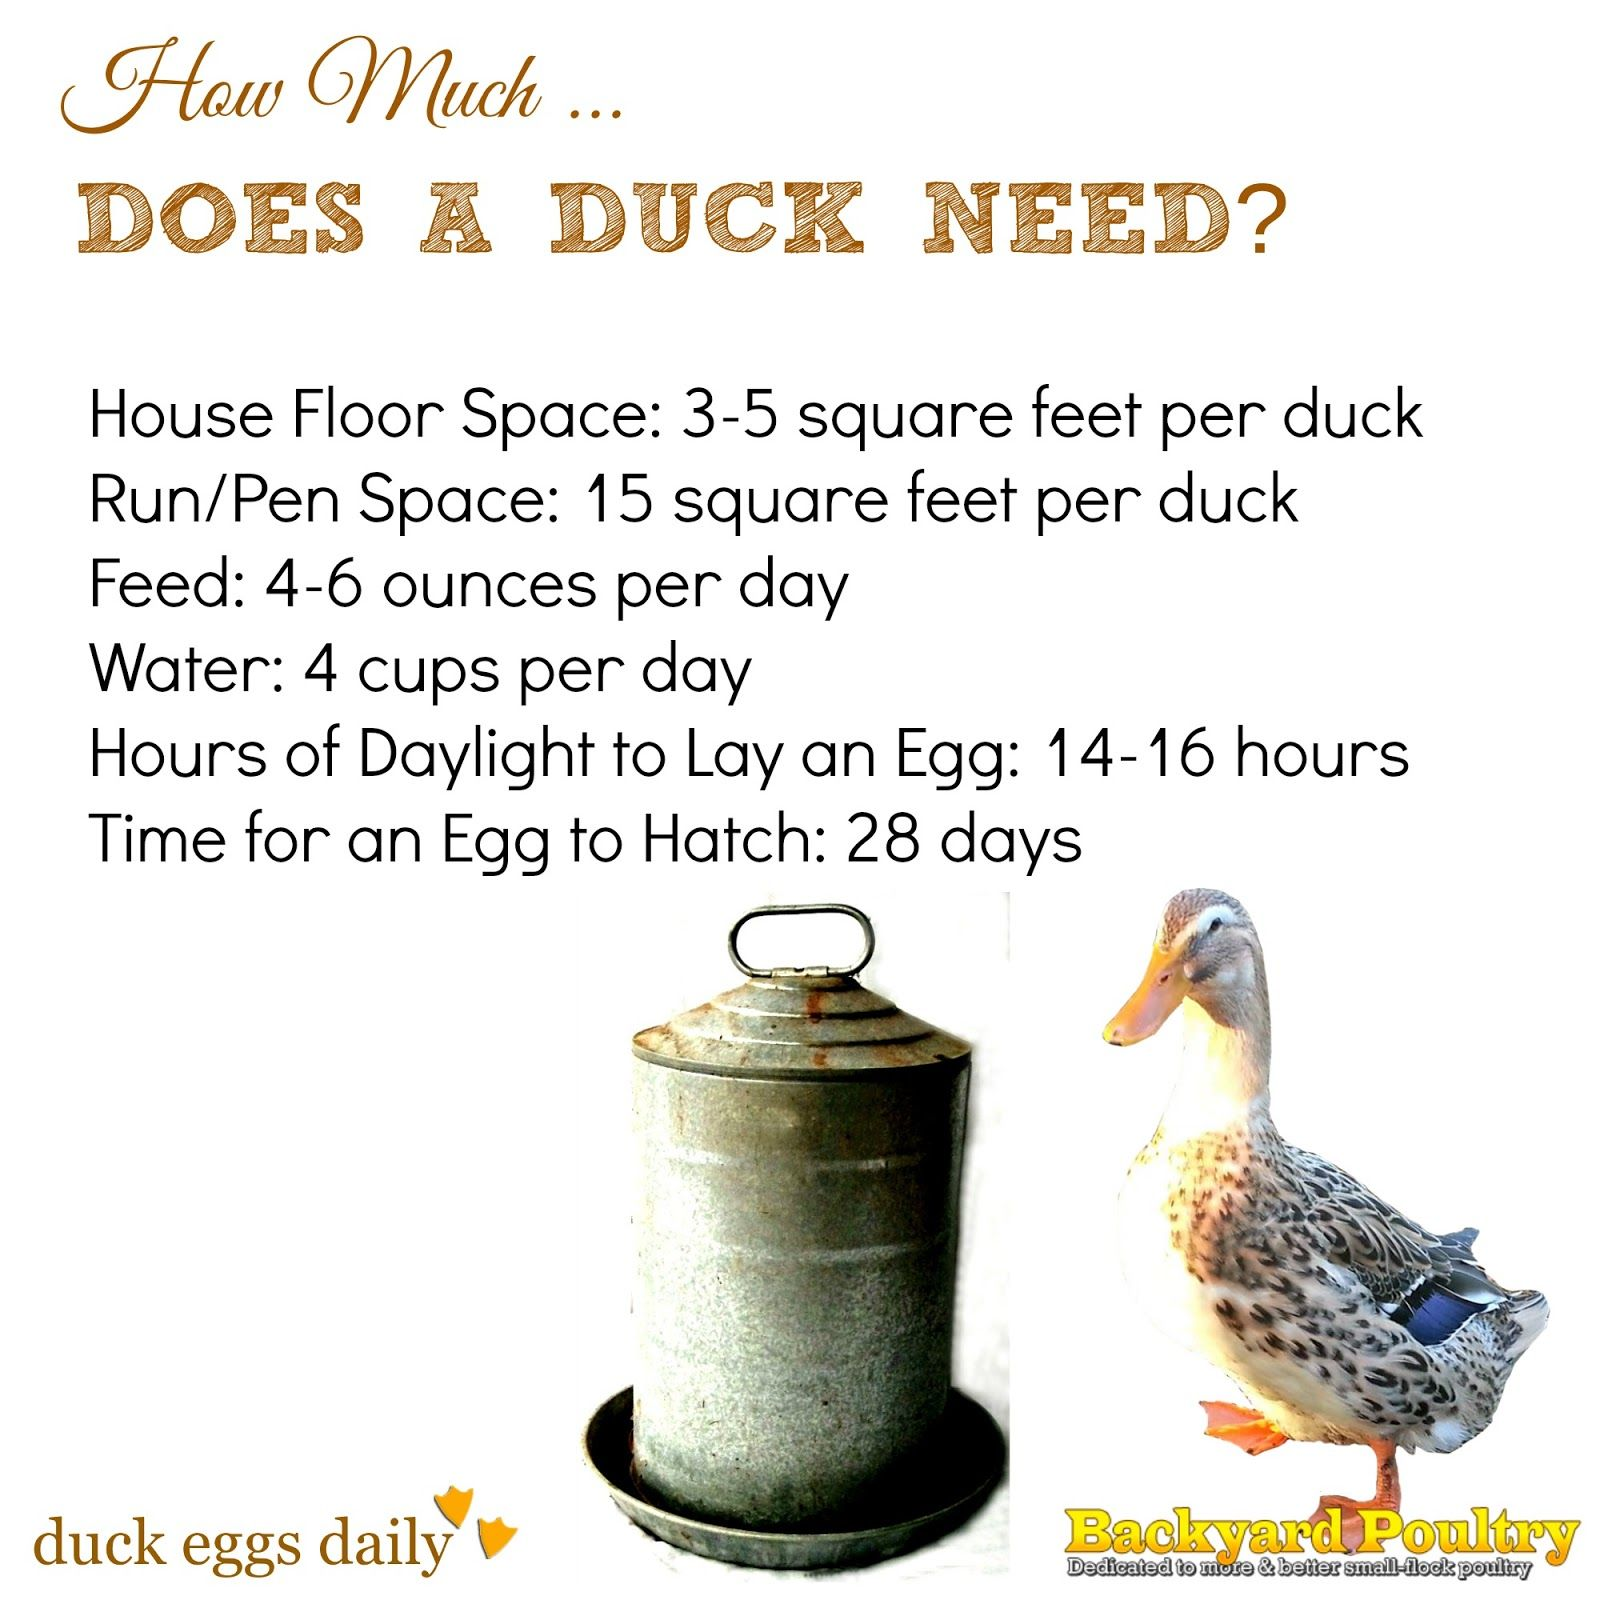 How much space feed water light does a duck need fresh infographic covering how much space feed water and light a backyard duck really needs nvjuhfo Image collections